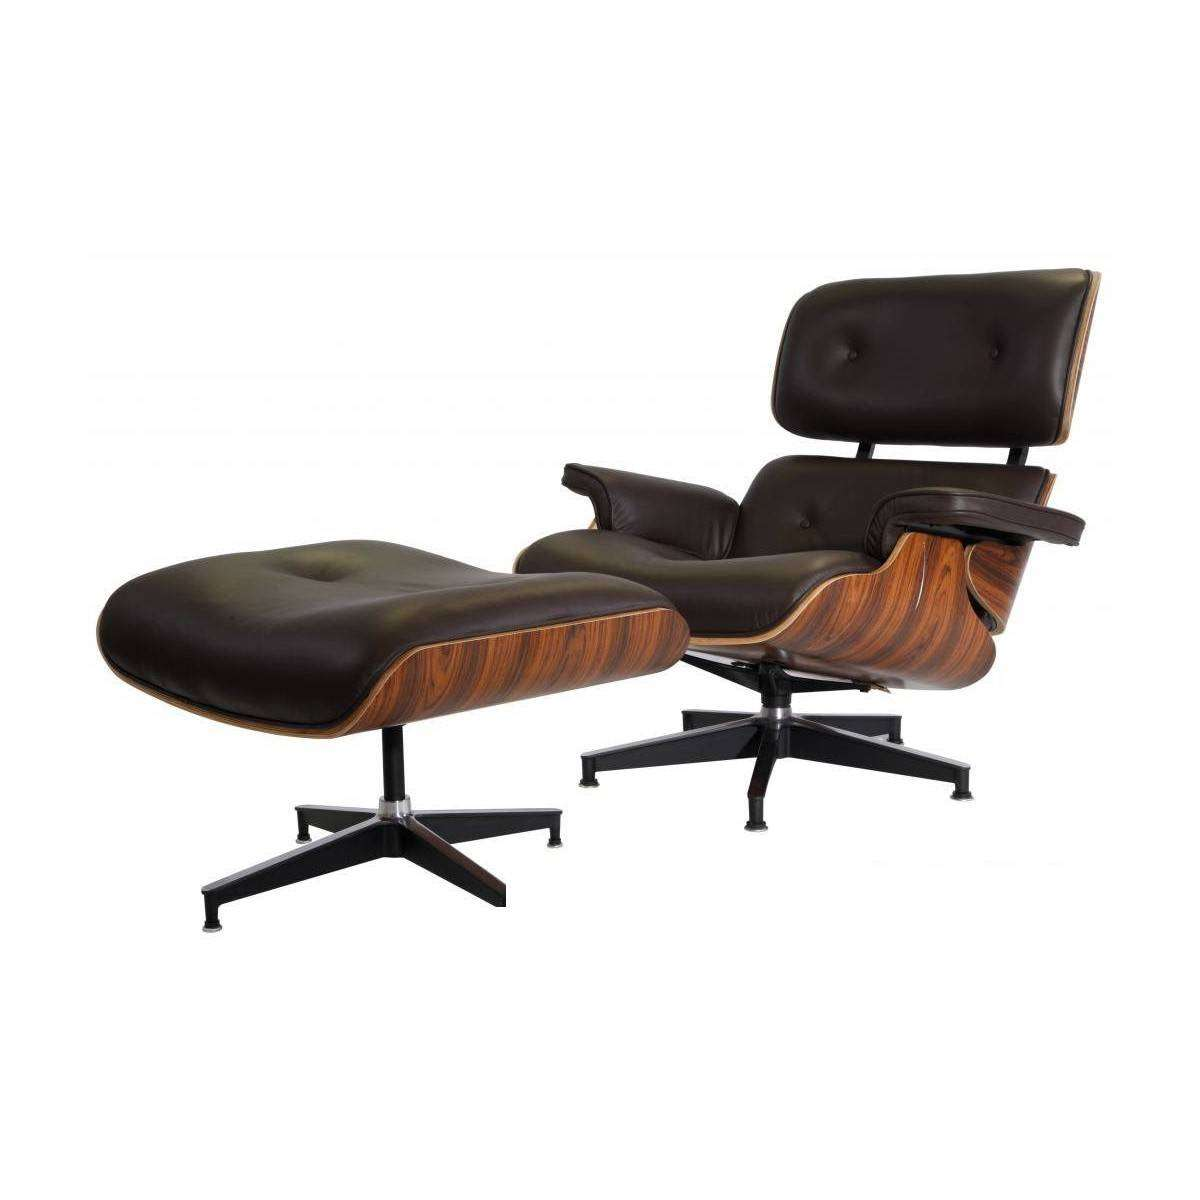 Eames lounge chair ottoman replica modterior usa for Lounge chair replica erfahrungen